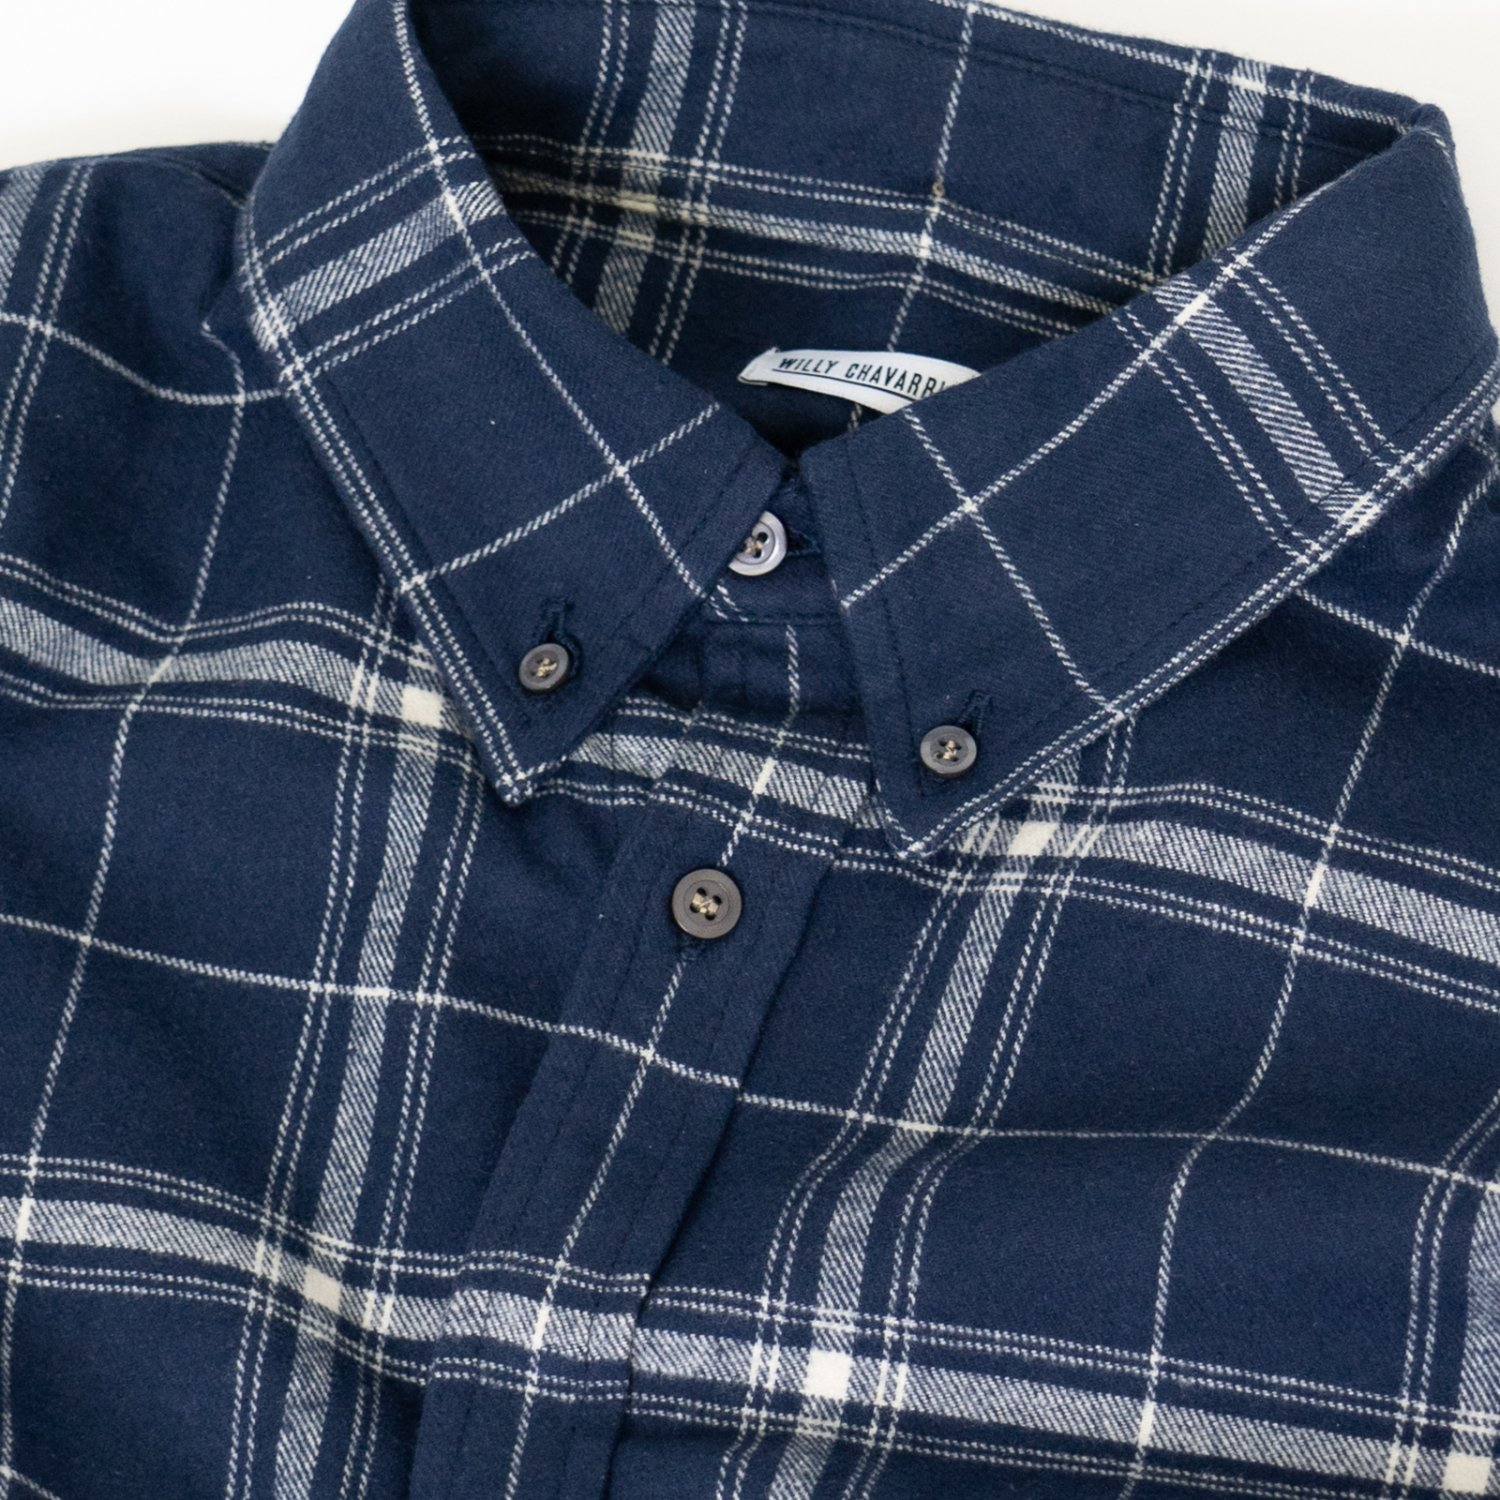 WILLY CHAVARRIA * BIG WILLY DRESS SHIRT * Blue Plaid